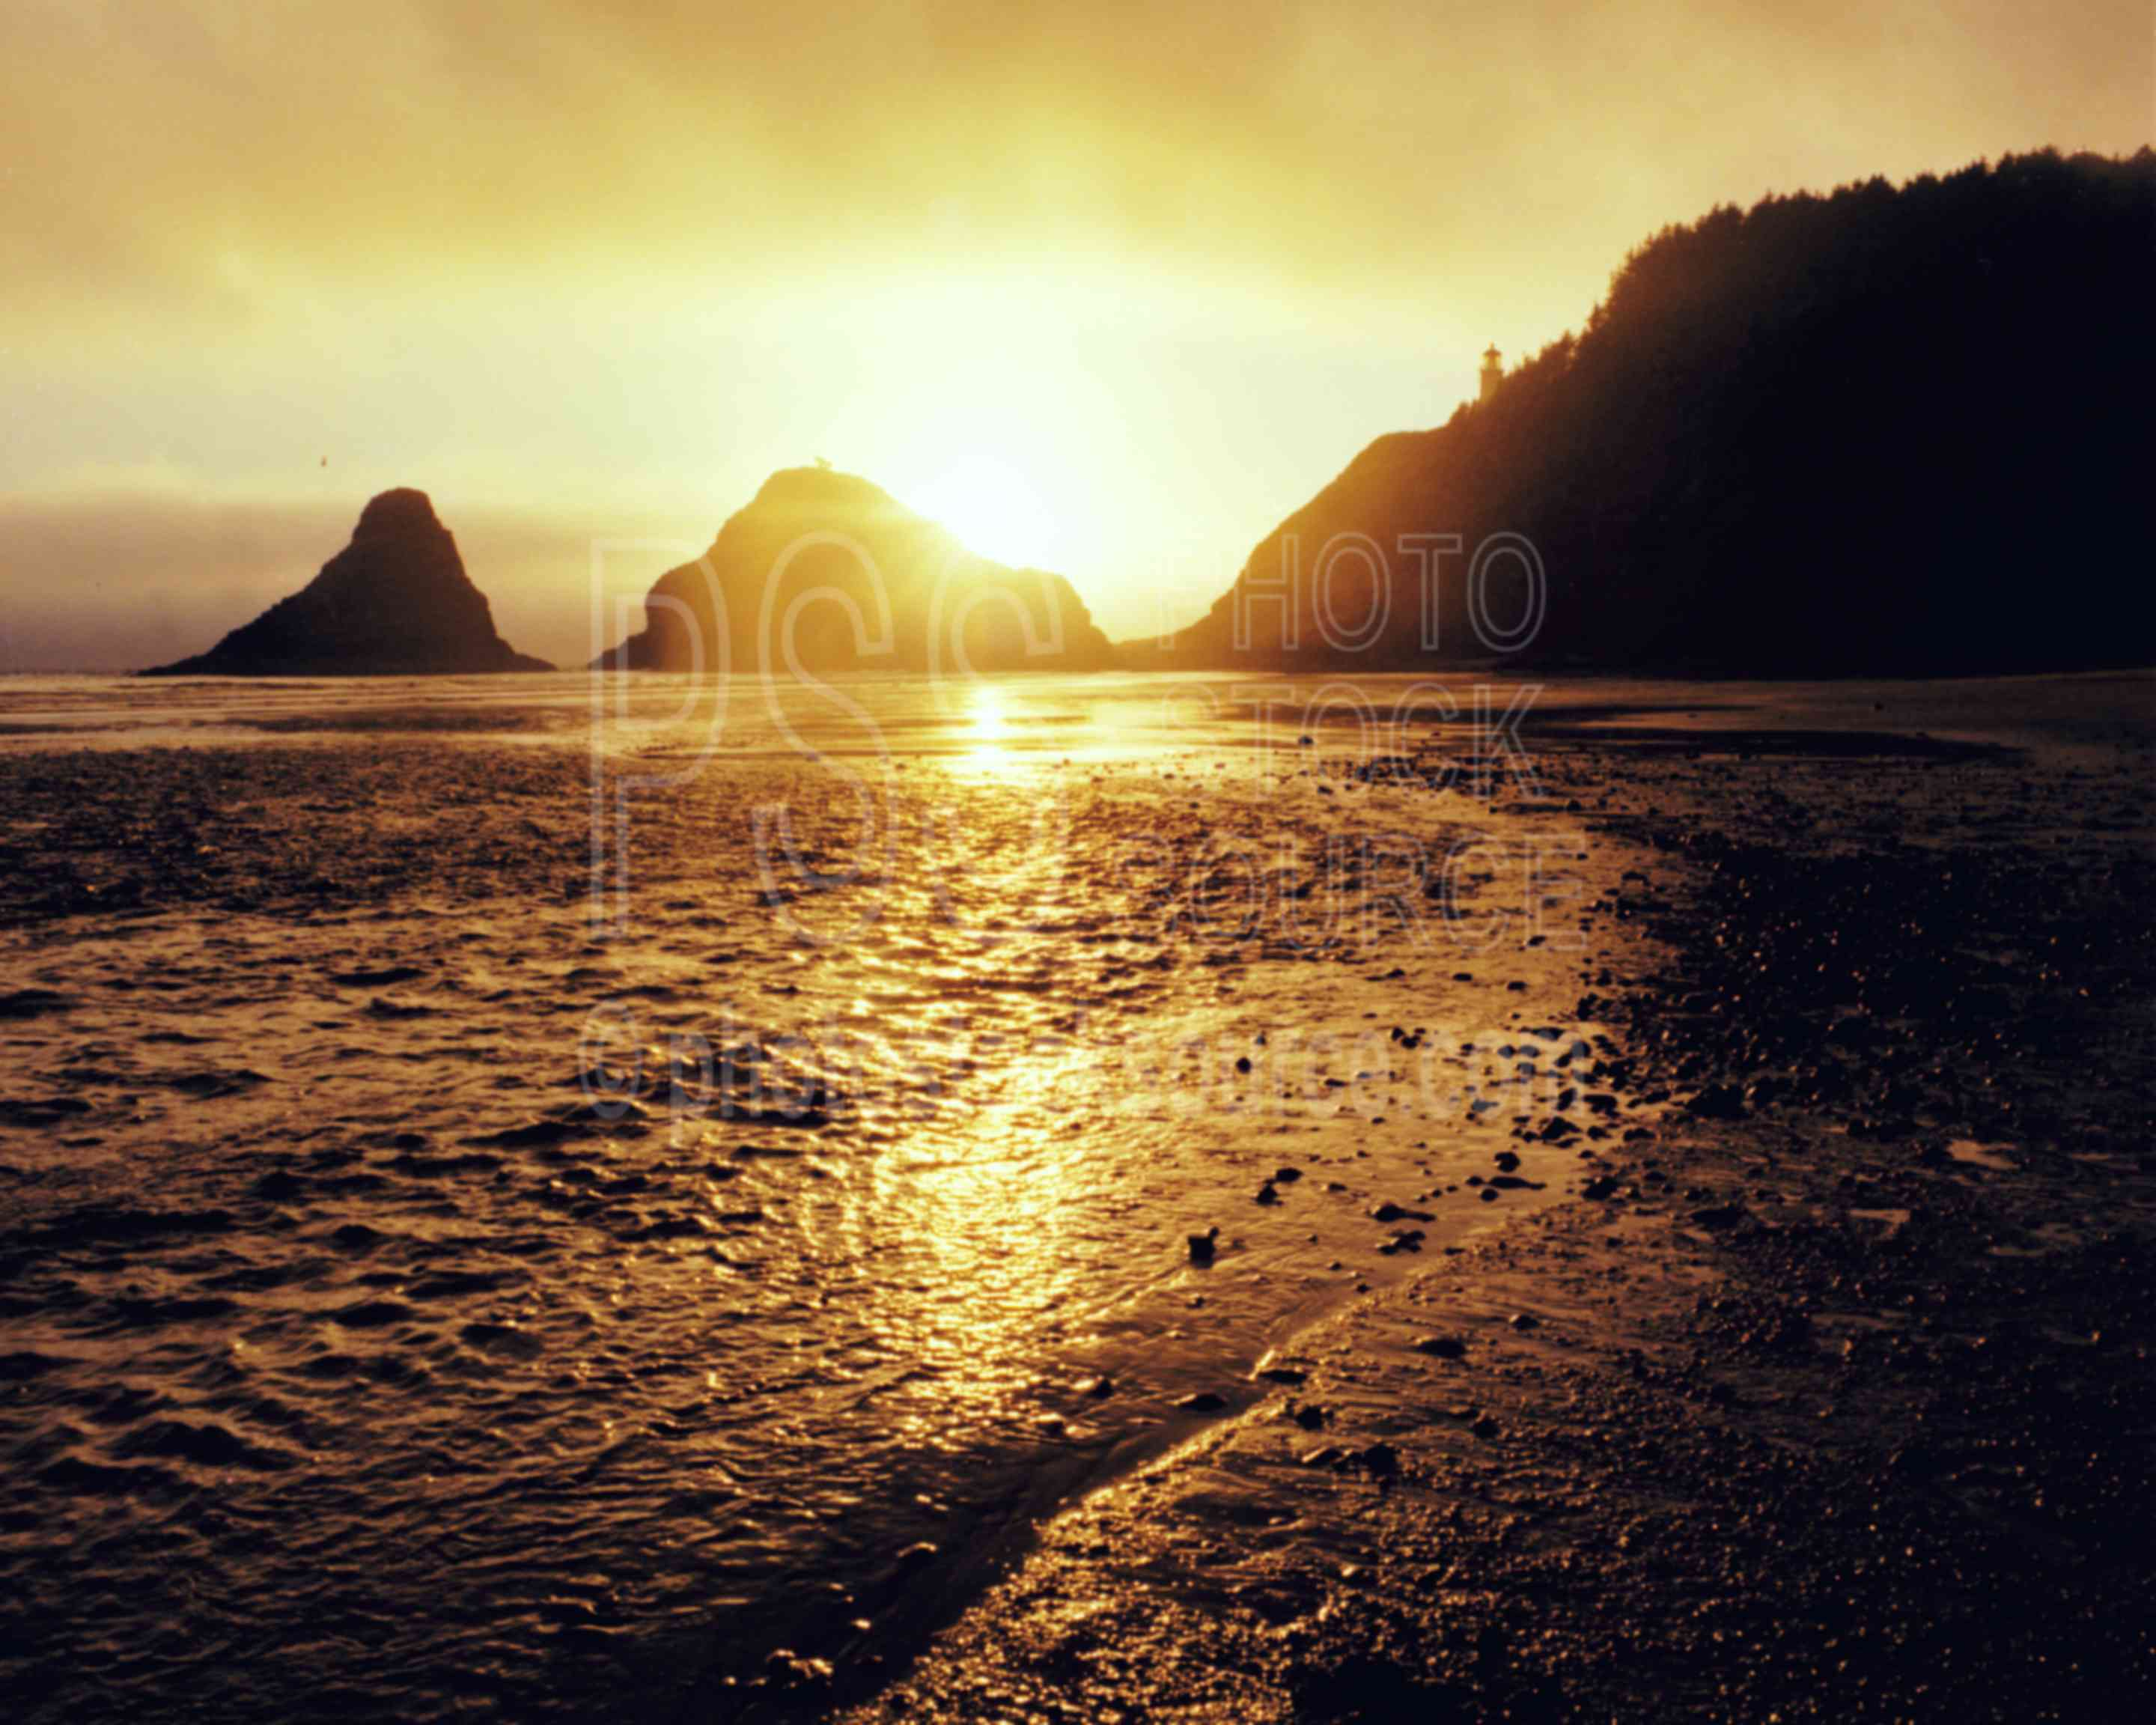 Heceta Head Sunset,beach,lighthouse,sunset,usas,architecture,seascapes,coast,lighthouses